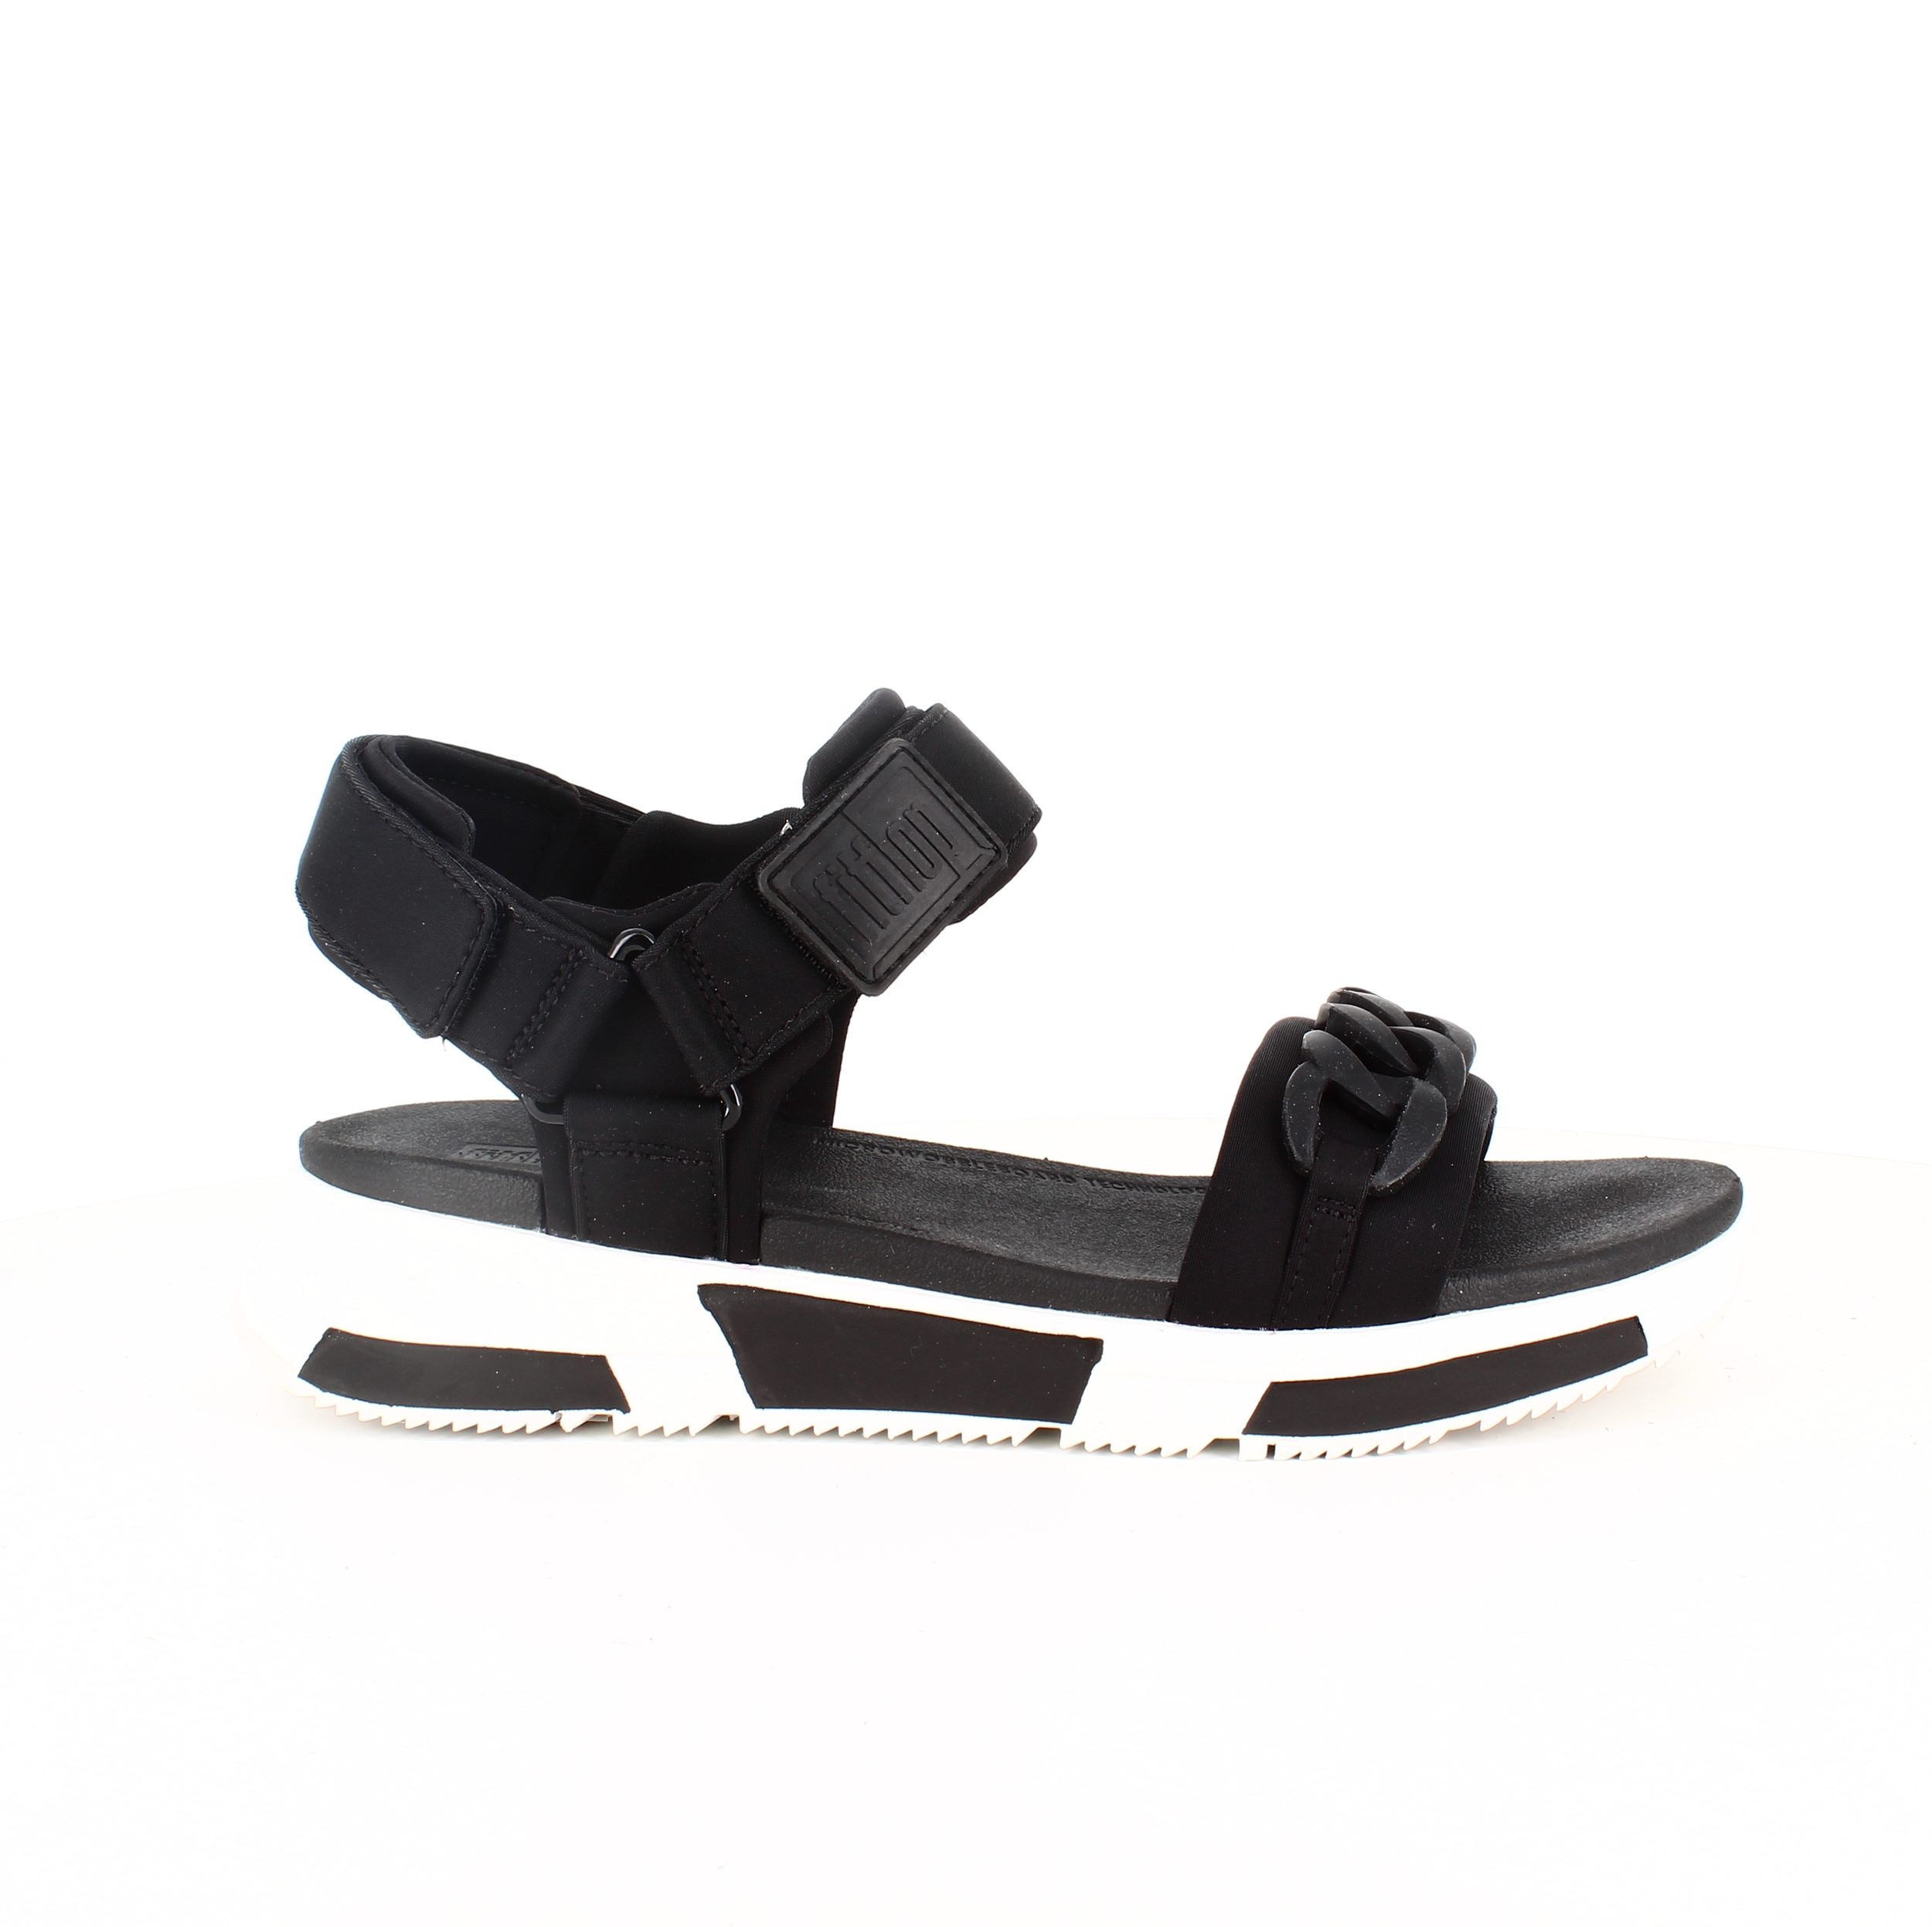 Image of   Heda Back strap sandal fra Fit flop - 39